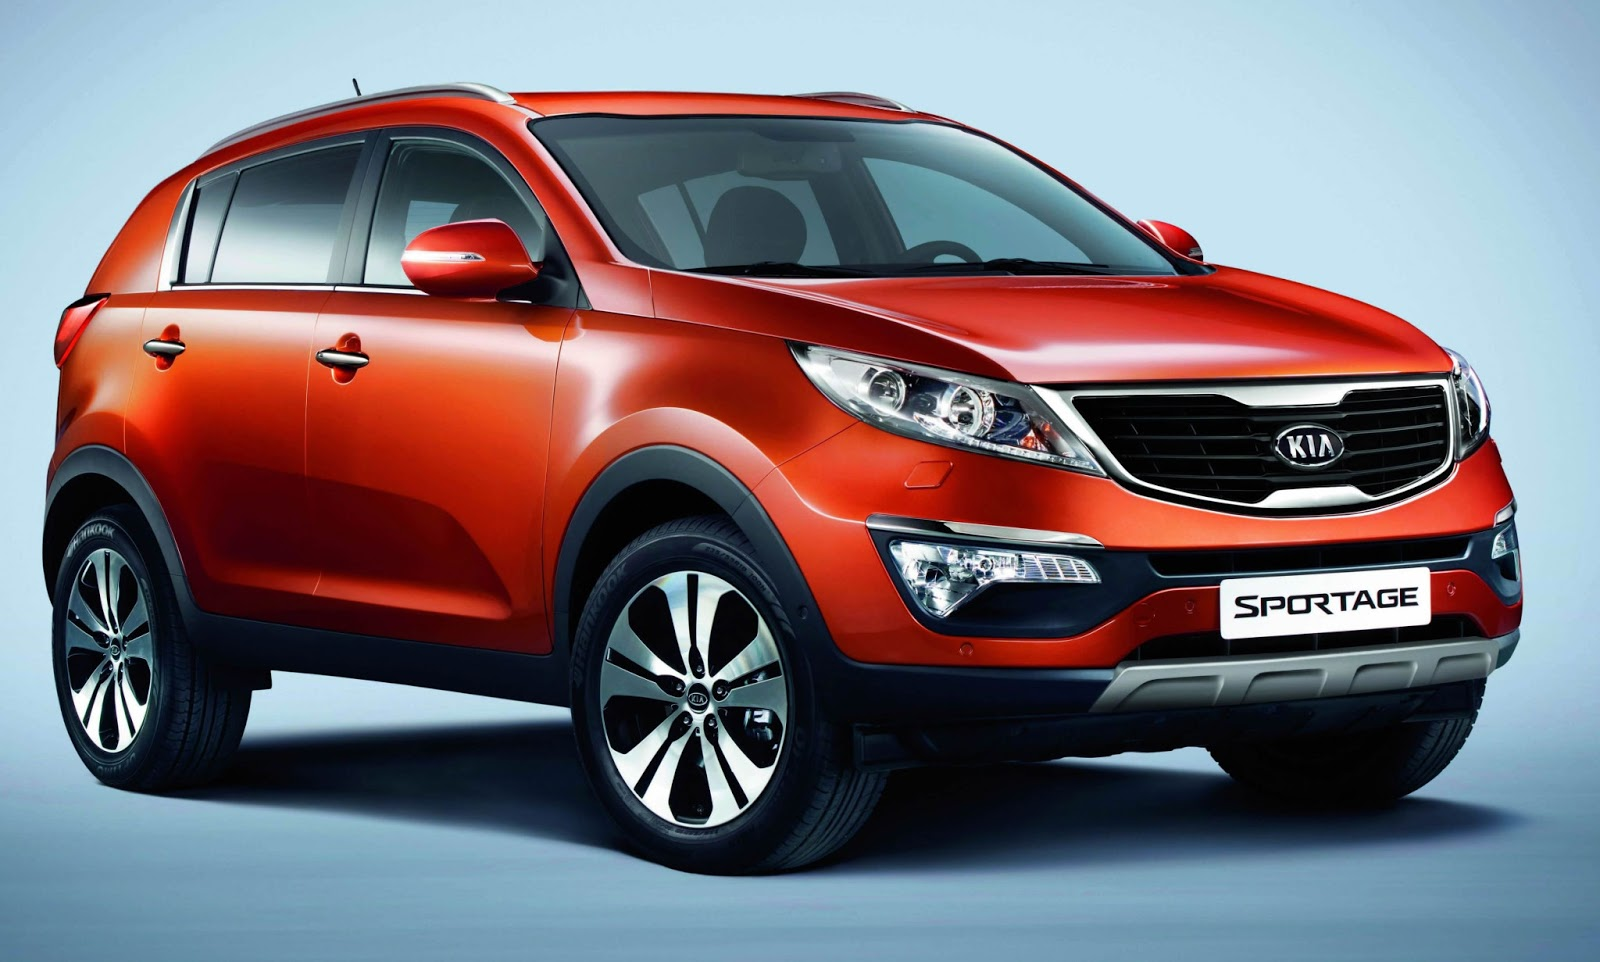 You searched for En Yeni Kia Sportage 2013 - Cars Review and Auto